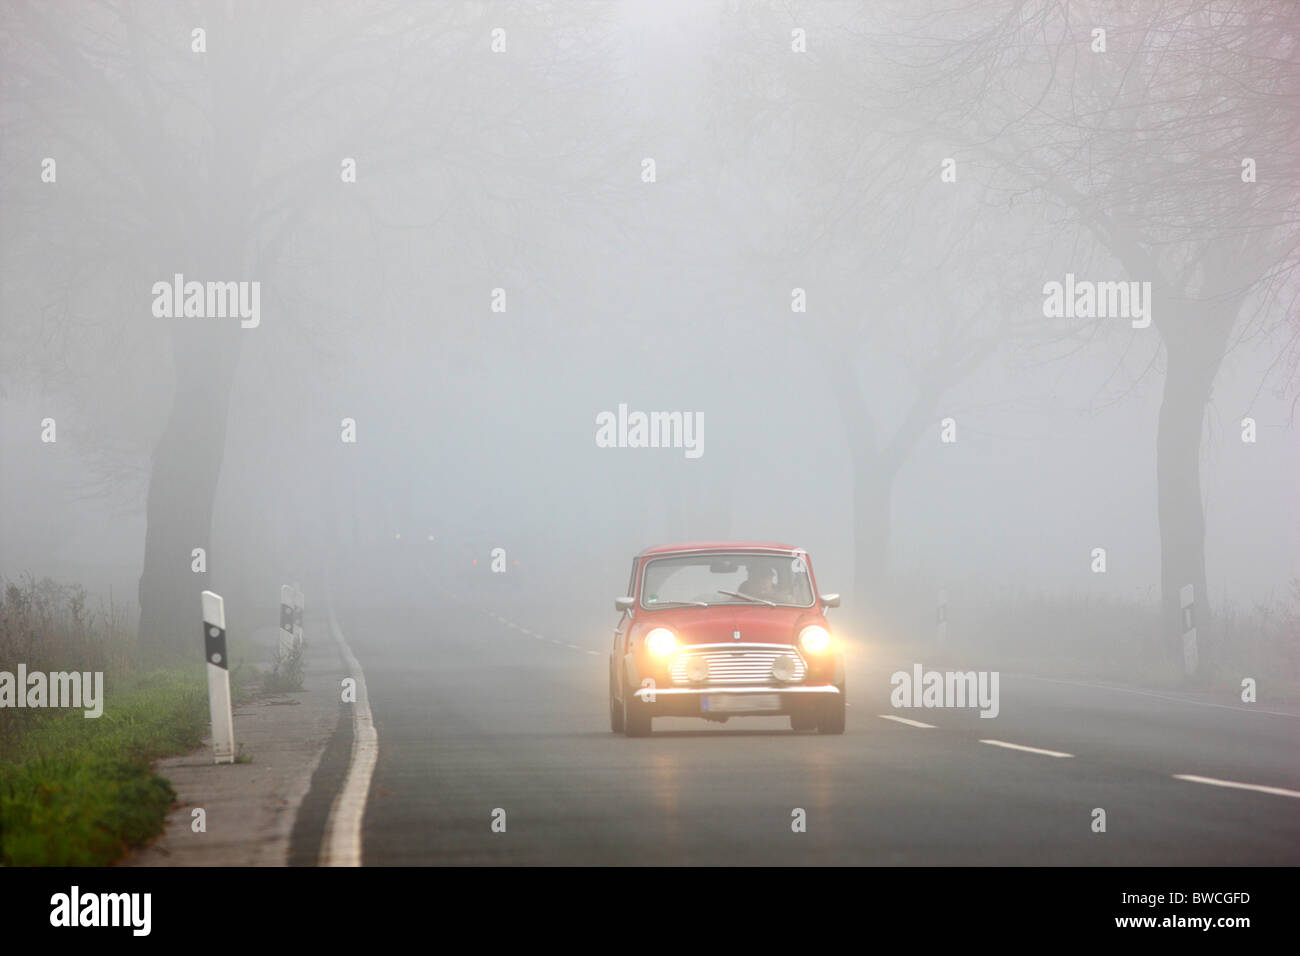 Autumn, thick fog, low visibility on a road. Essen, Germany. Stock Photo